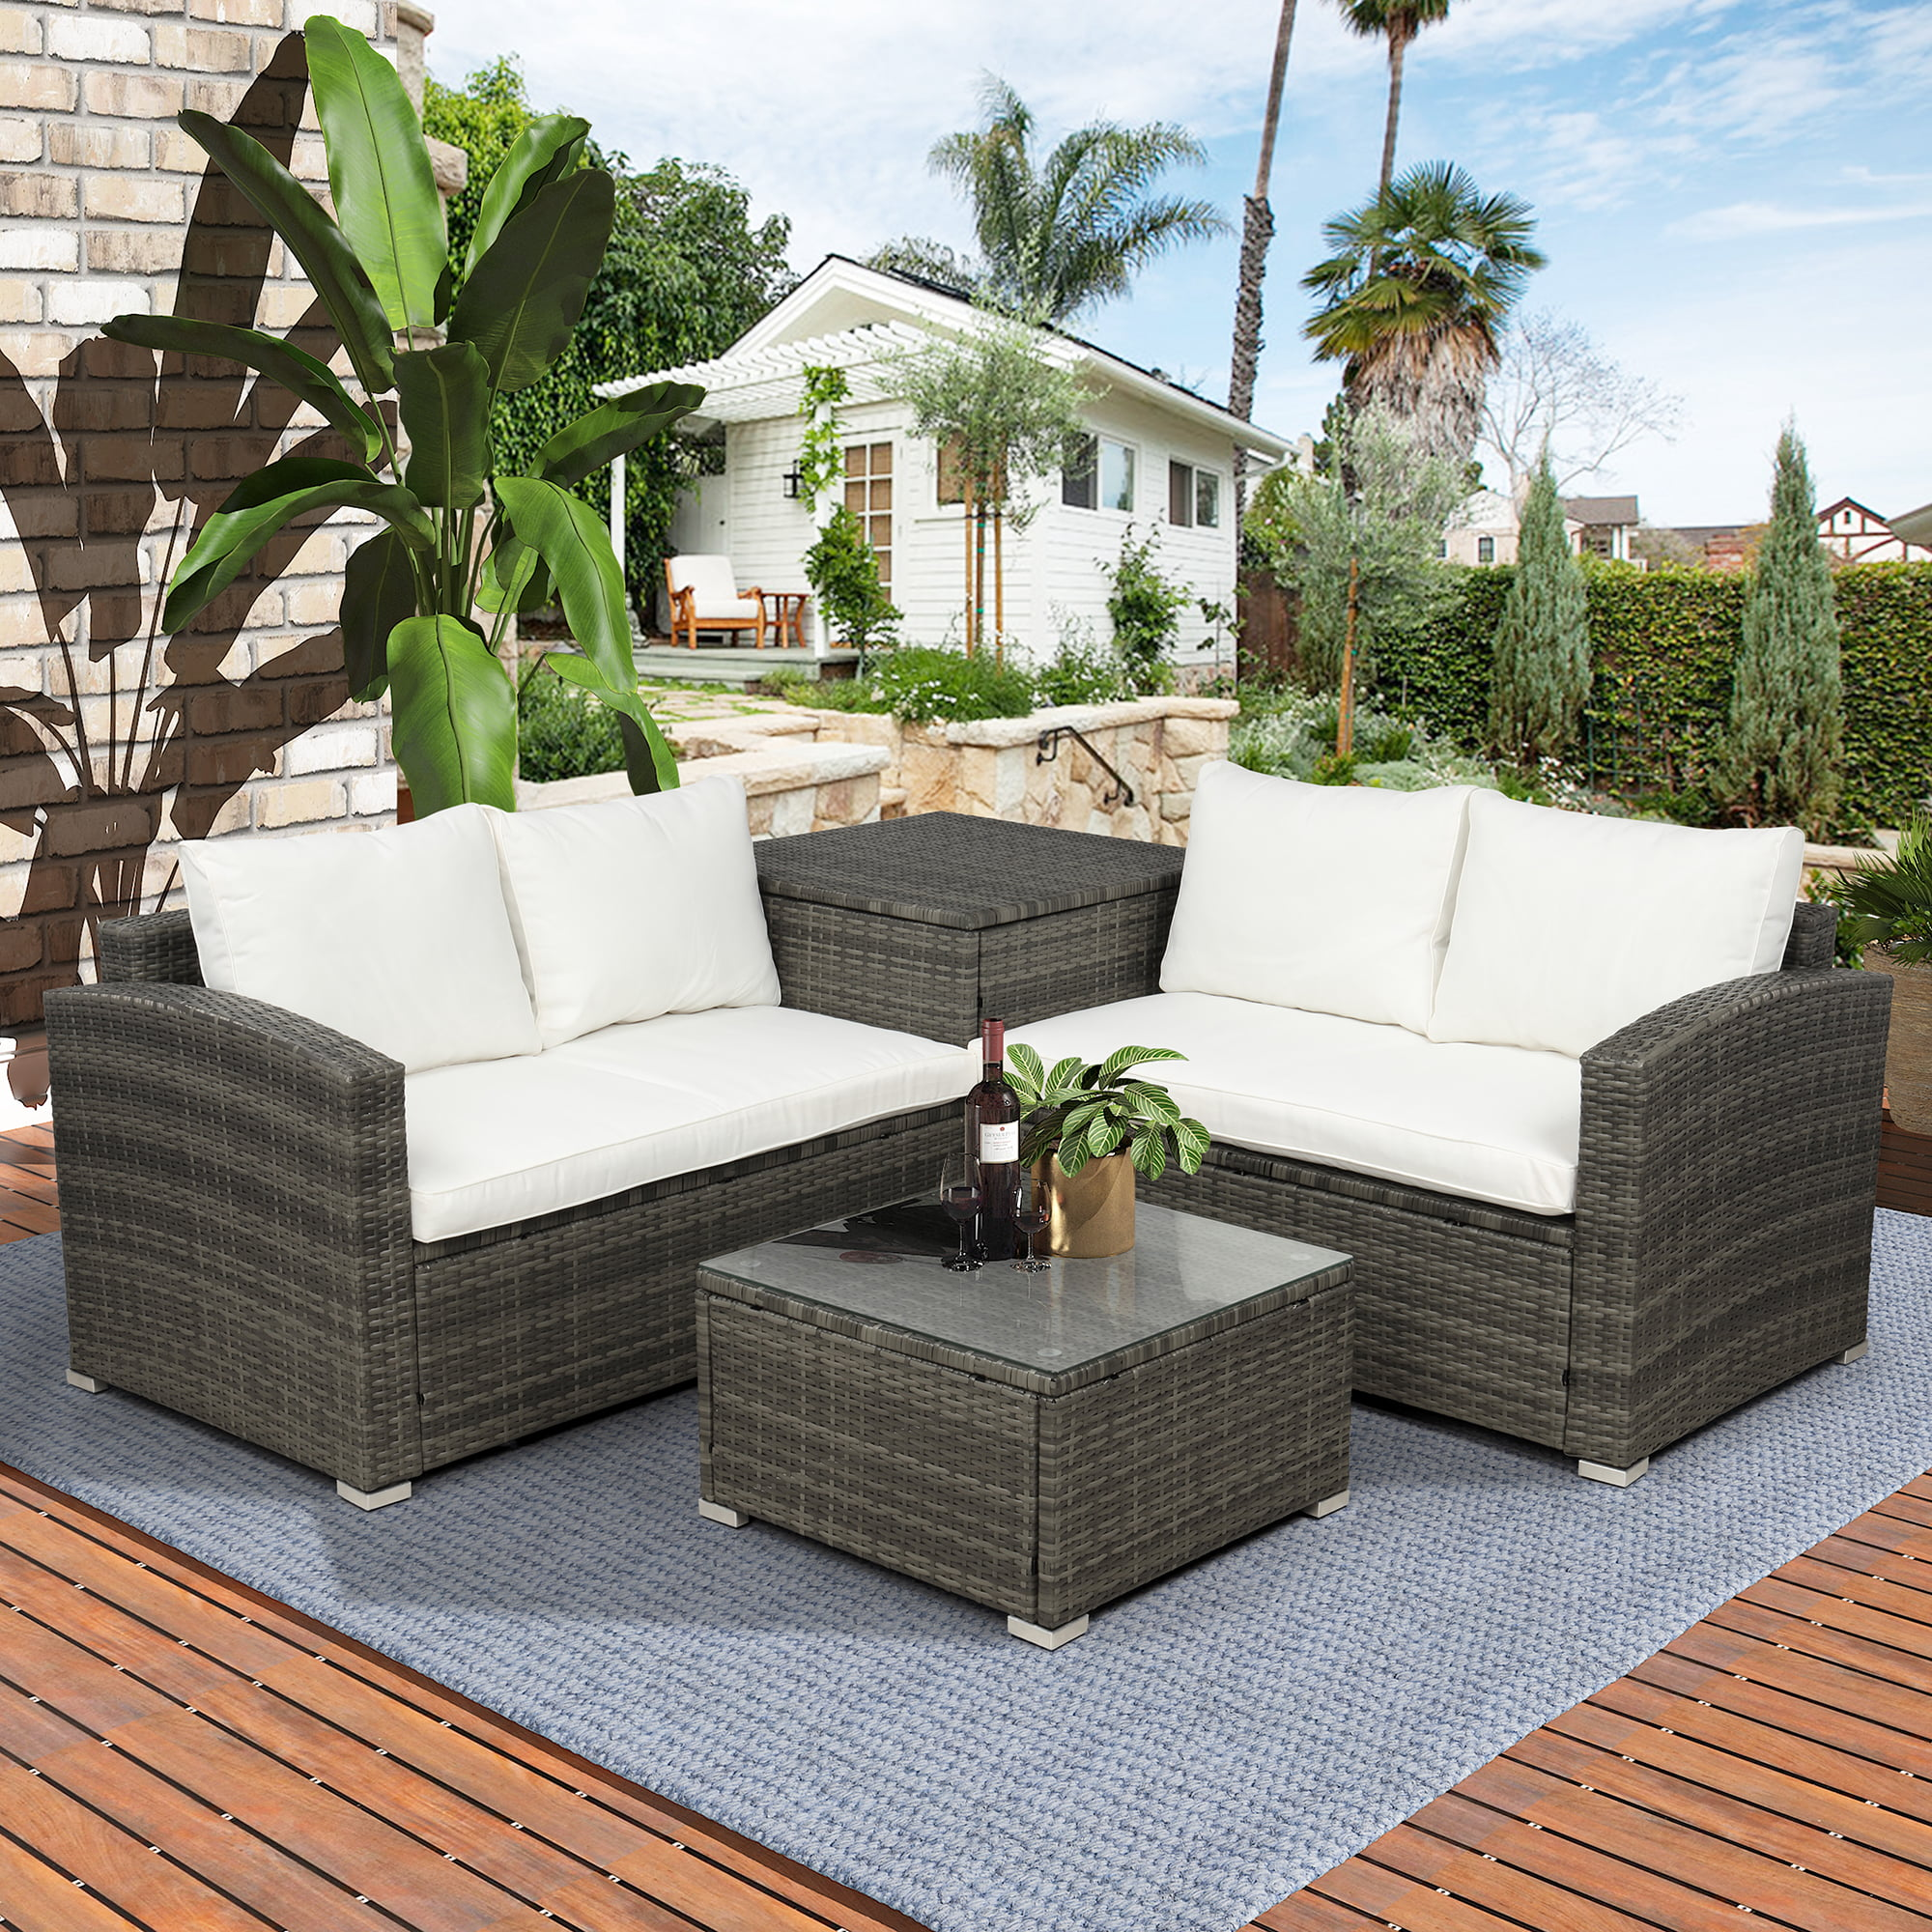 4-Piece Rattan Patio Furniture Sets Clearance, Wicker Bistro Patio